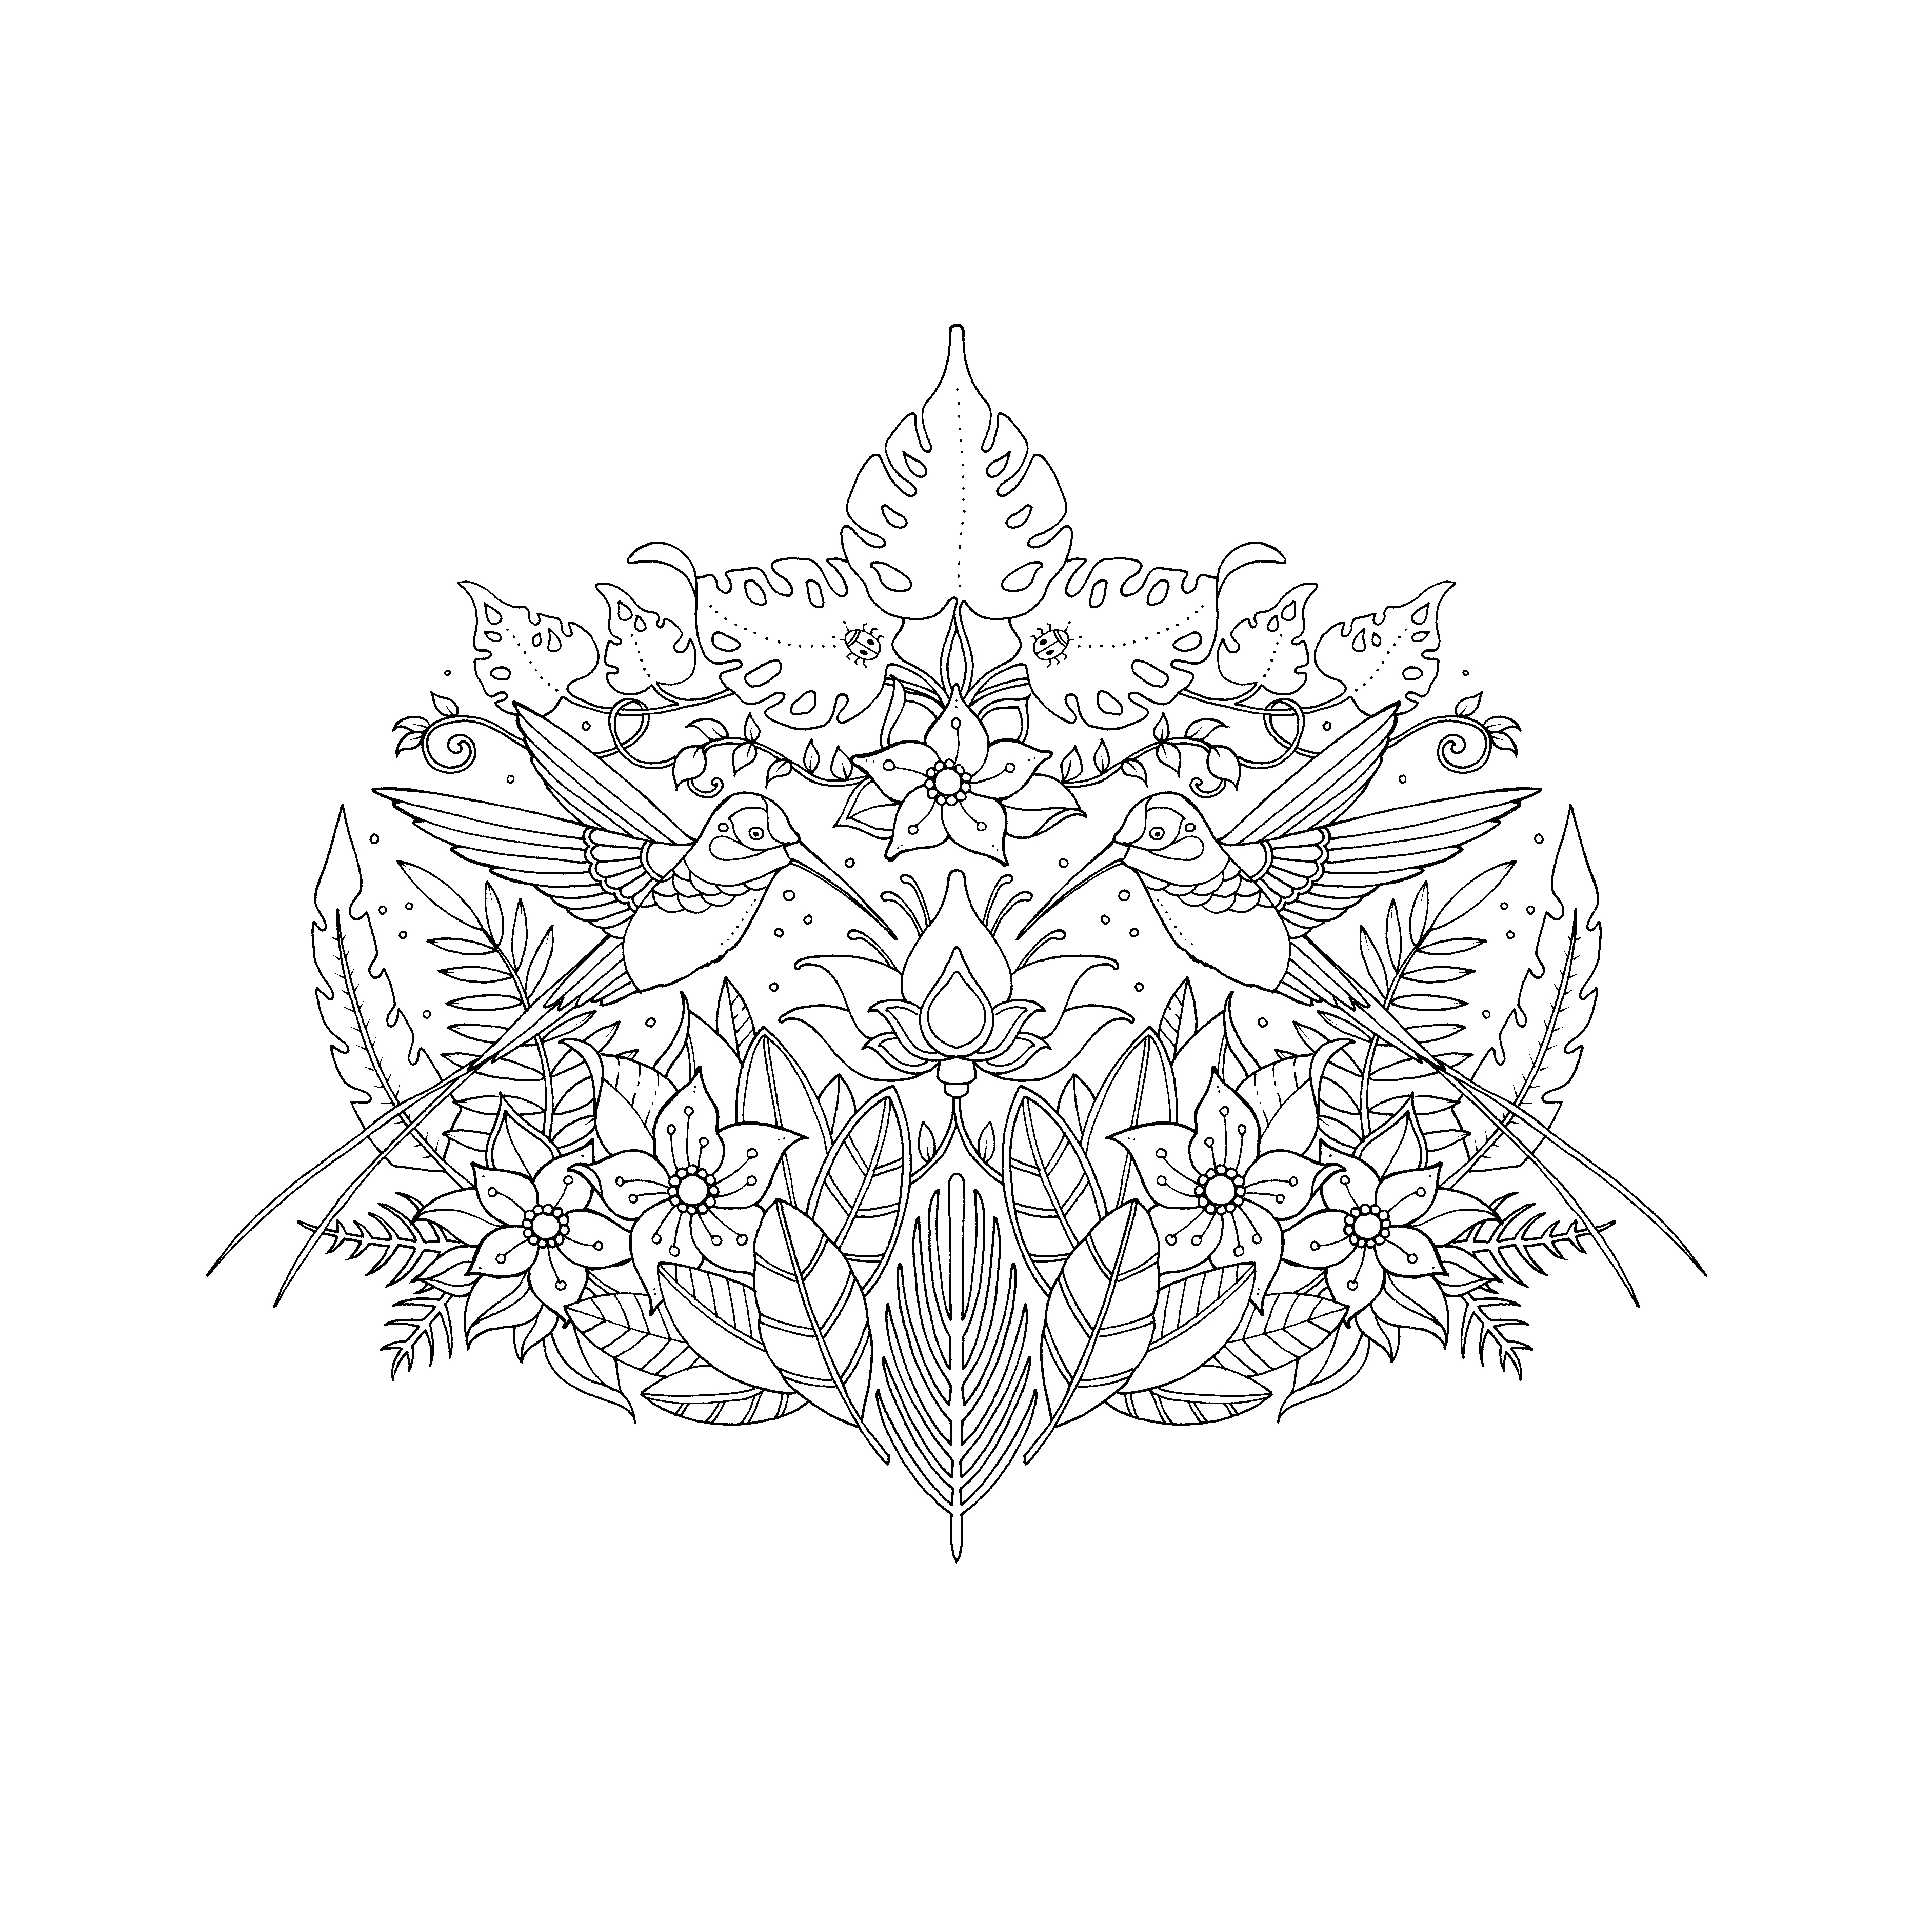 Marvelous Johanna Basford Coloring Pages Photo Inspirations ... | 3750x3767